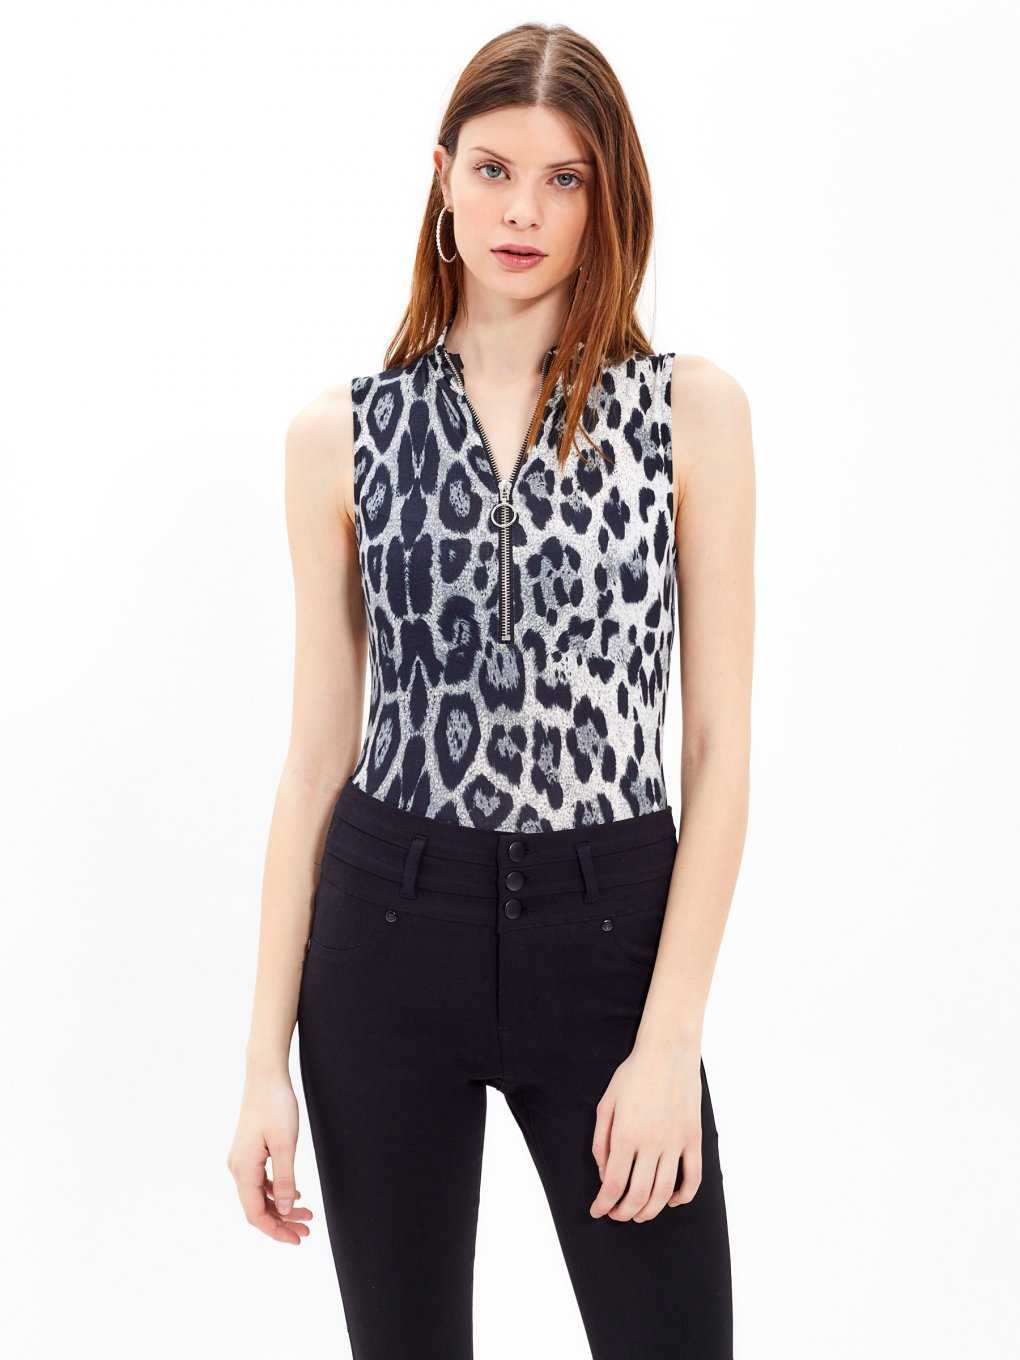 Sleeveless bodysuit with animal print